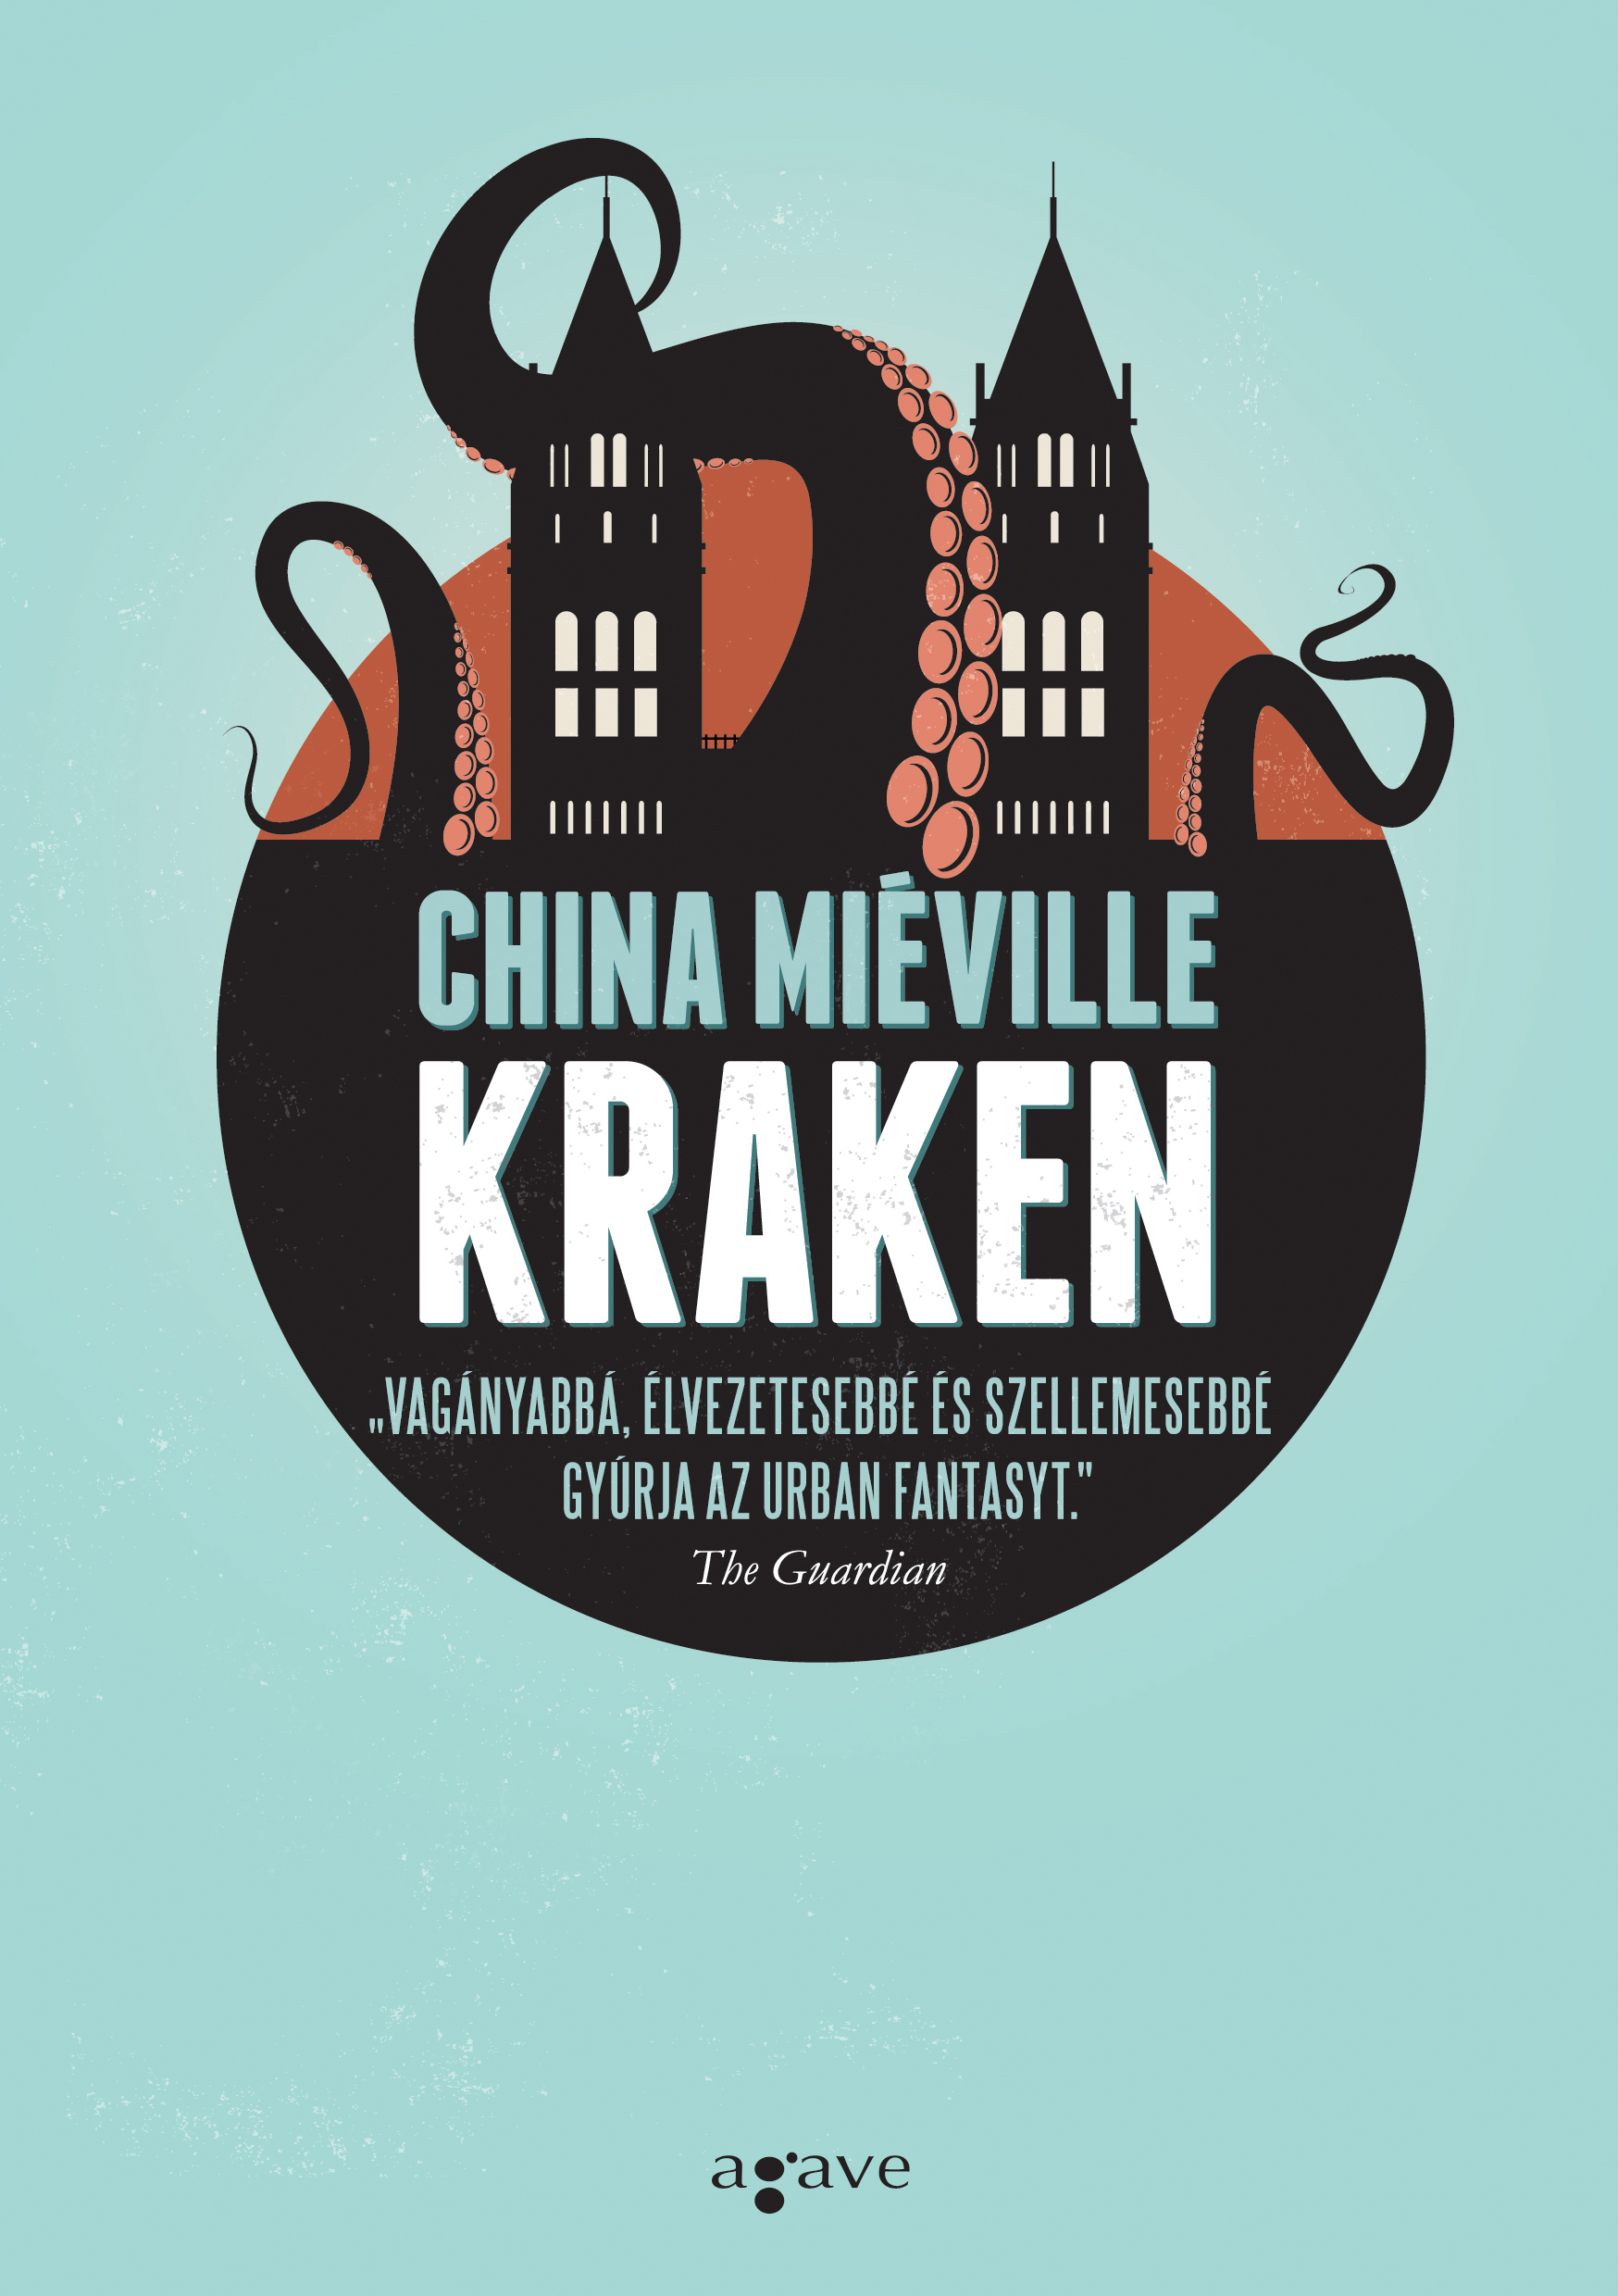 china-mieville-kraken-b1-final.jpg